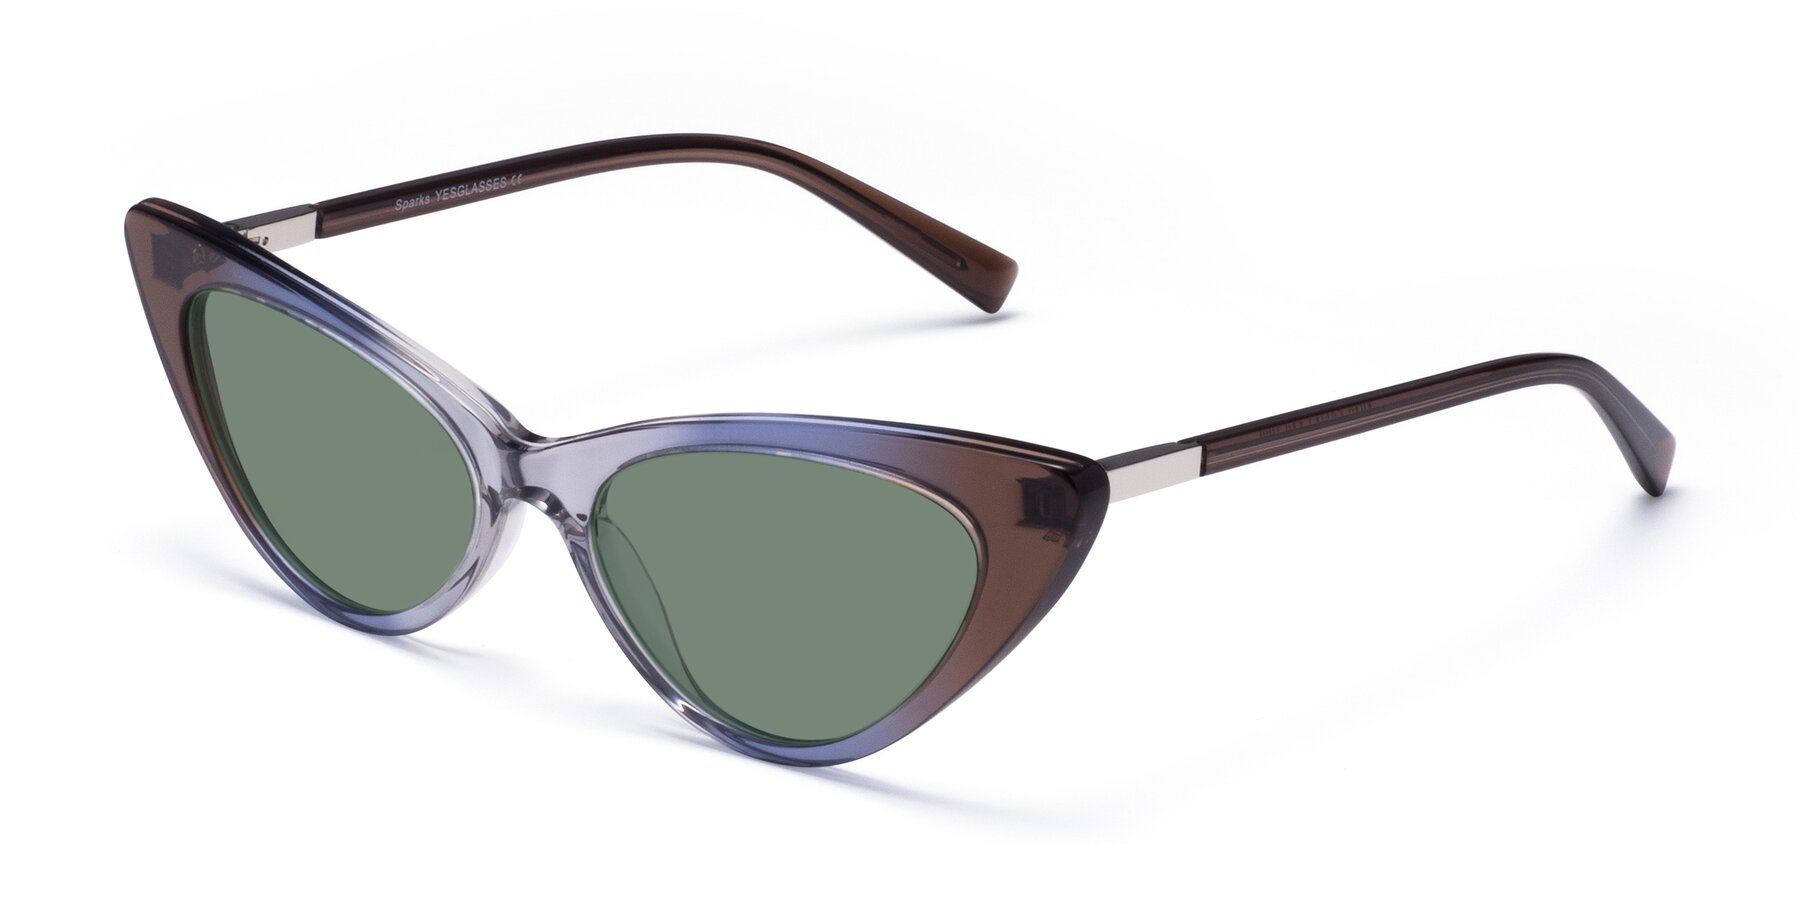 Angle of Sparks in Transparent Gradient Brown with Medium Green Tinted Lenses